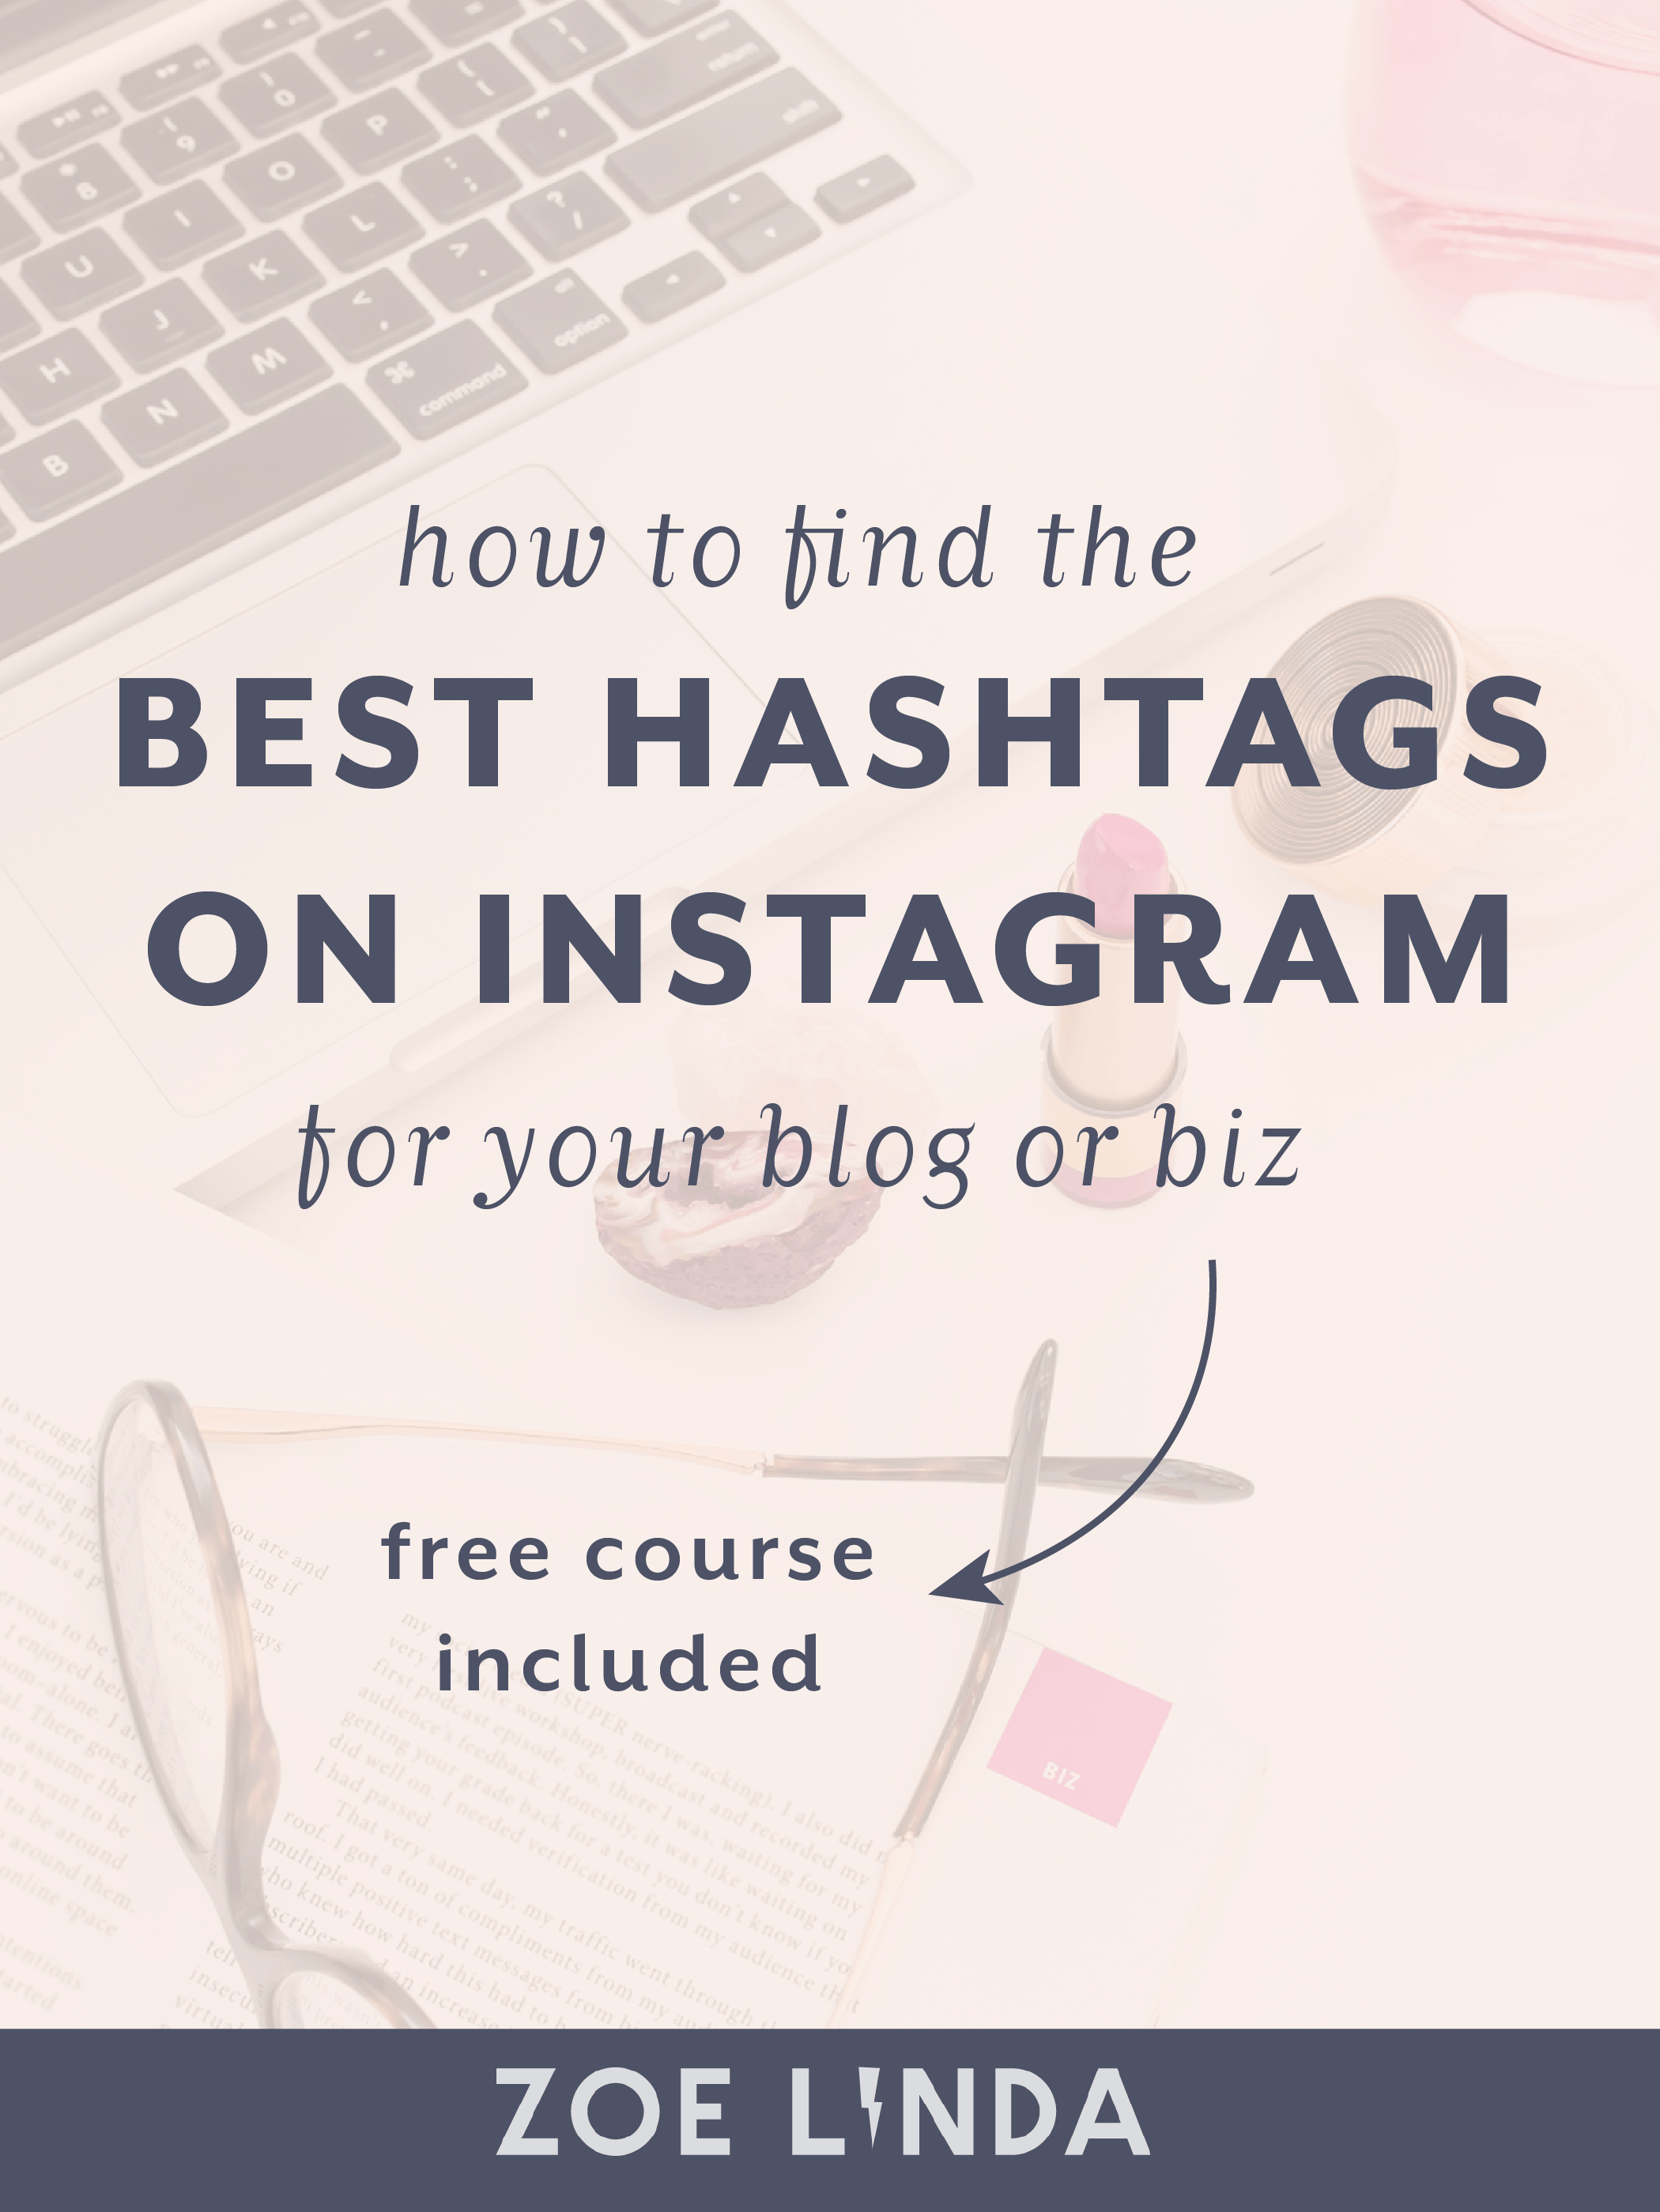 How To Find The Perfect Hashtags For Instagram | Are you struggling to find the best Instagram hashtags for your blog or business account? Well, your in luck! Click through for actionable tips and advice - and don't forget to sign up to my free 5 day Instagram strategy course! #instagram #instagrammarketing #instagramstrategy